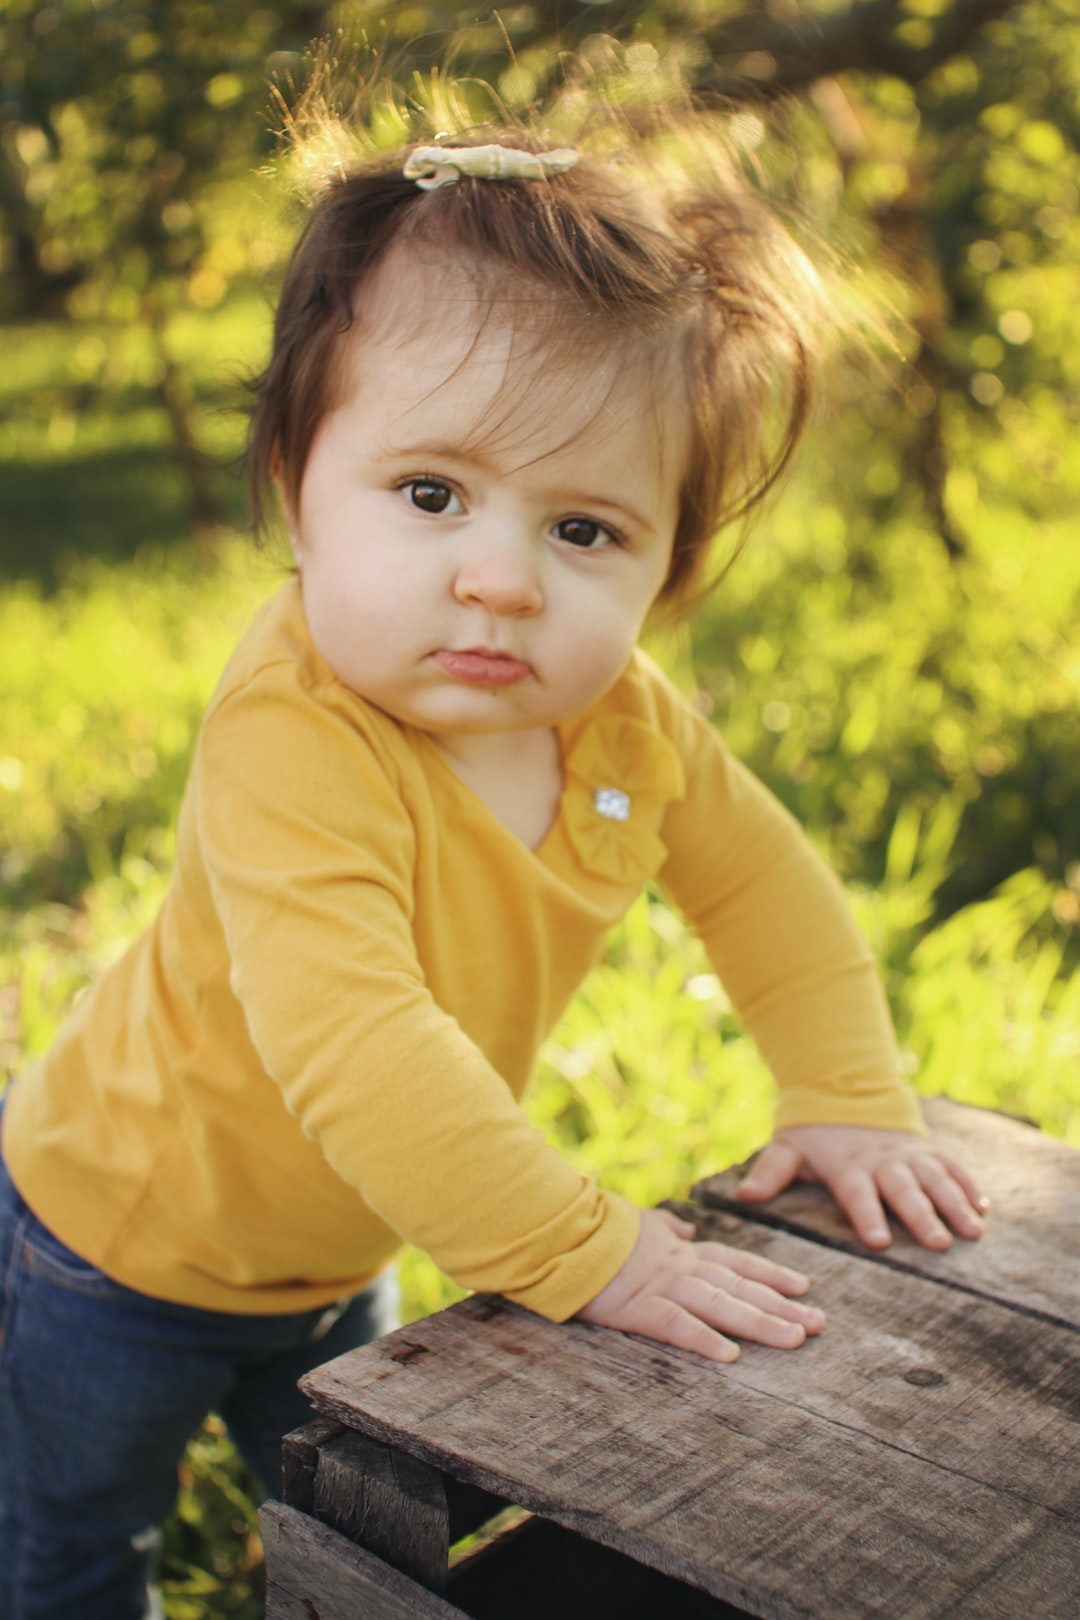 Young toddler girl wearing yellow shirt with red hair standing against a wooden crate in apple orchard at golden hour.